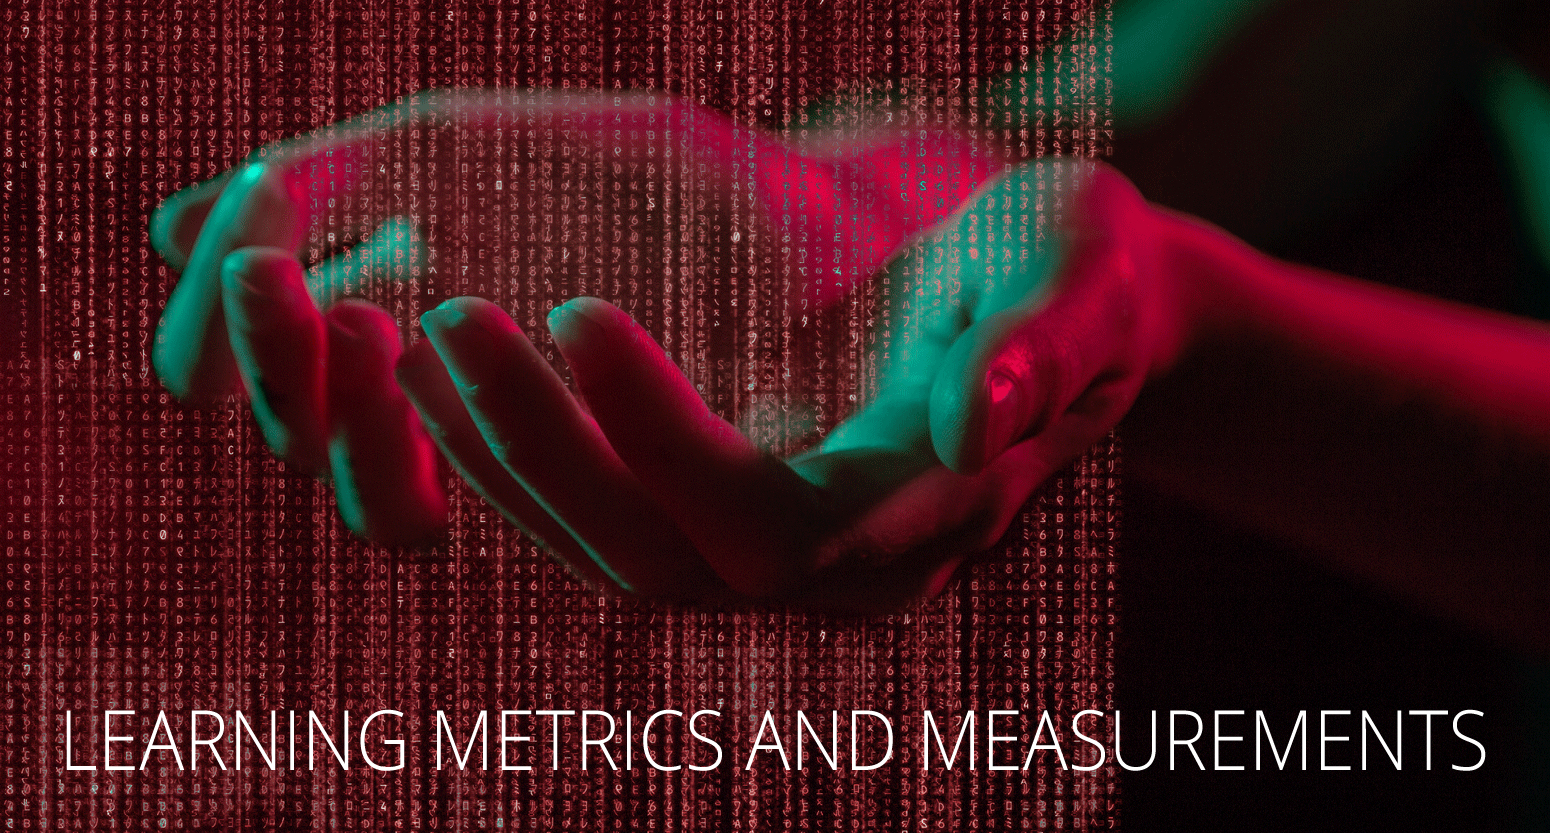 Learning Metrics and Measurement Dr. John Mattox, Gartner